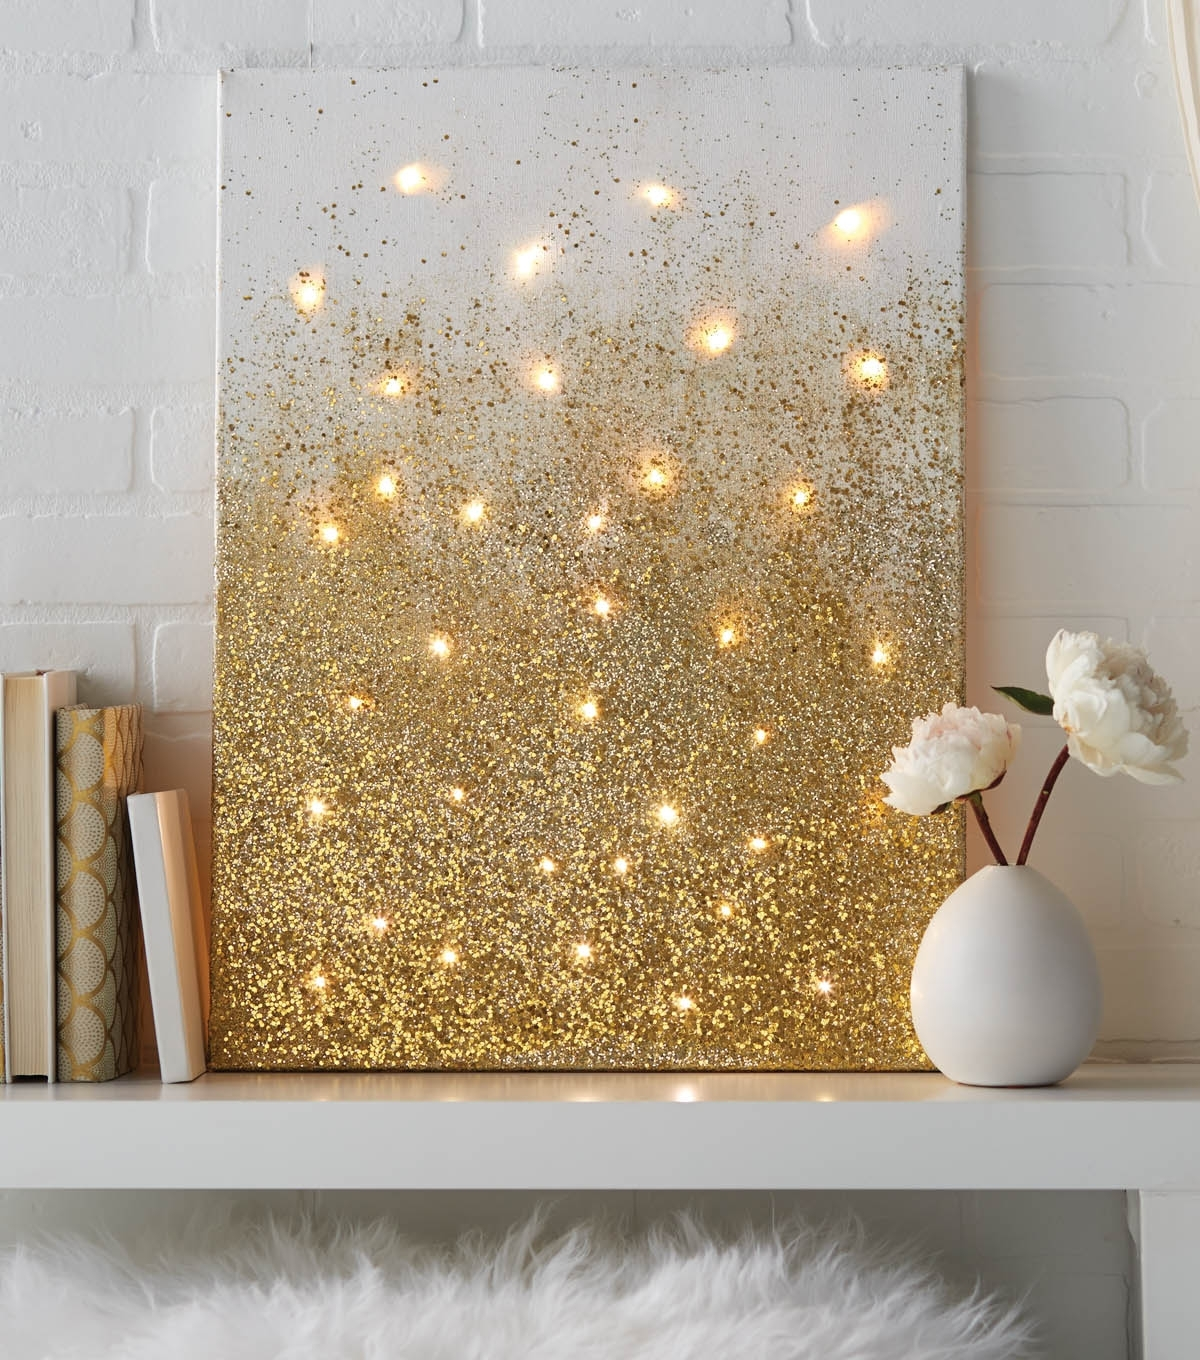 Glitter And Lights Canvas | Joann With Regard To 2018 Joann Fabric Wall Art (View 6 of 15)